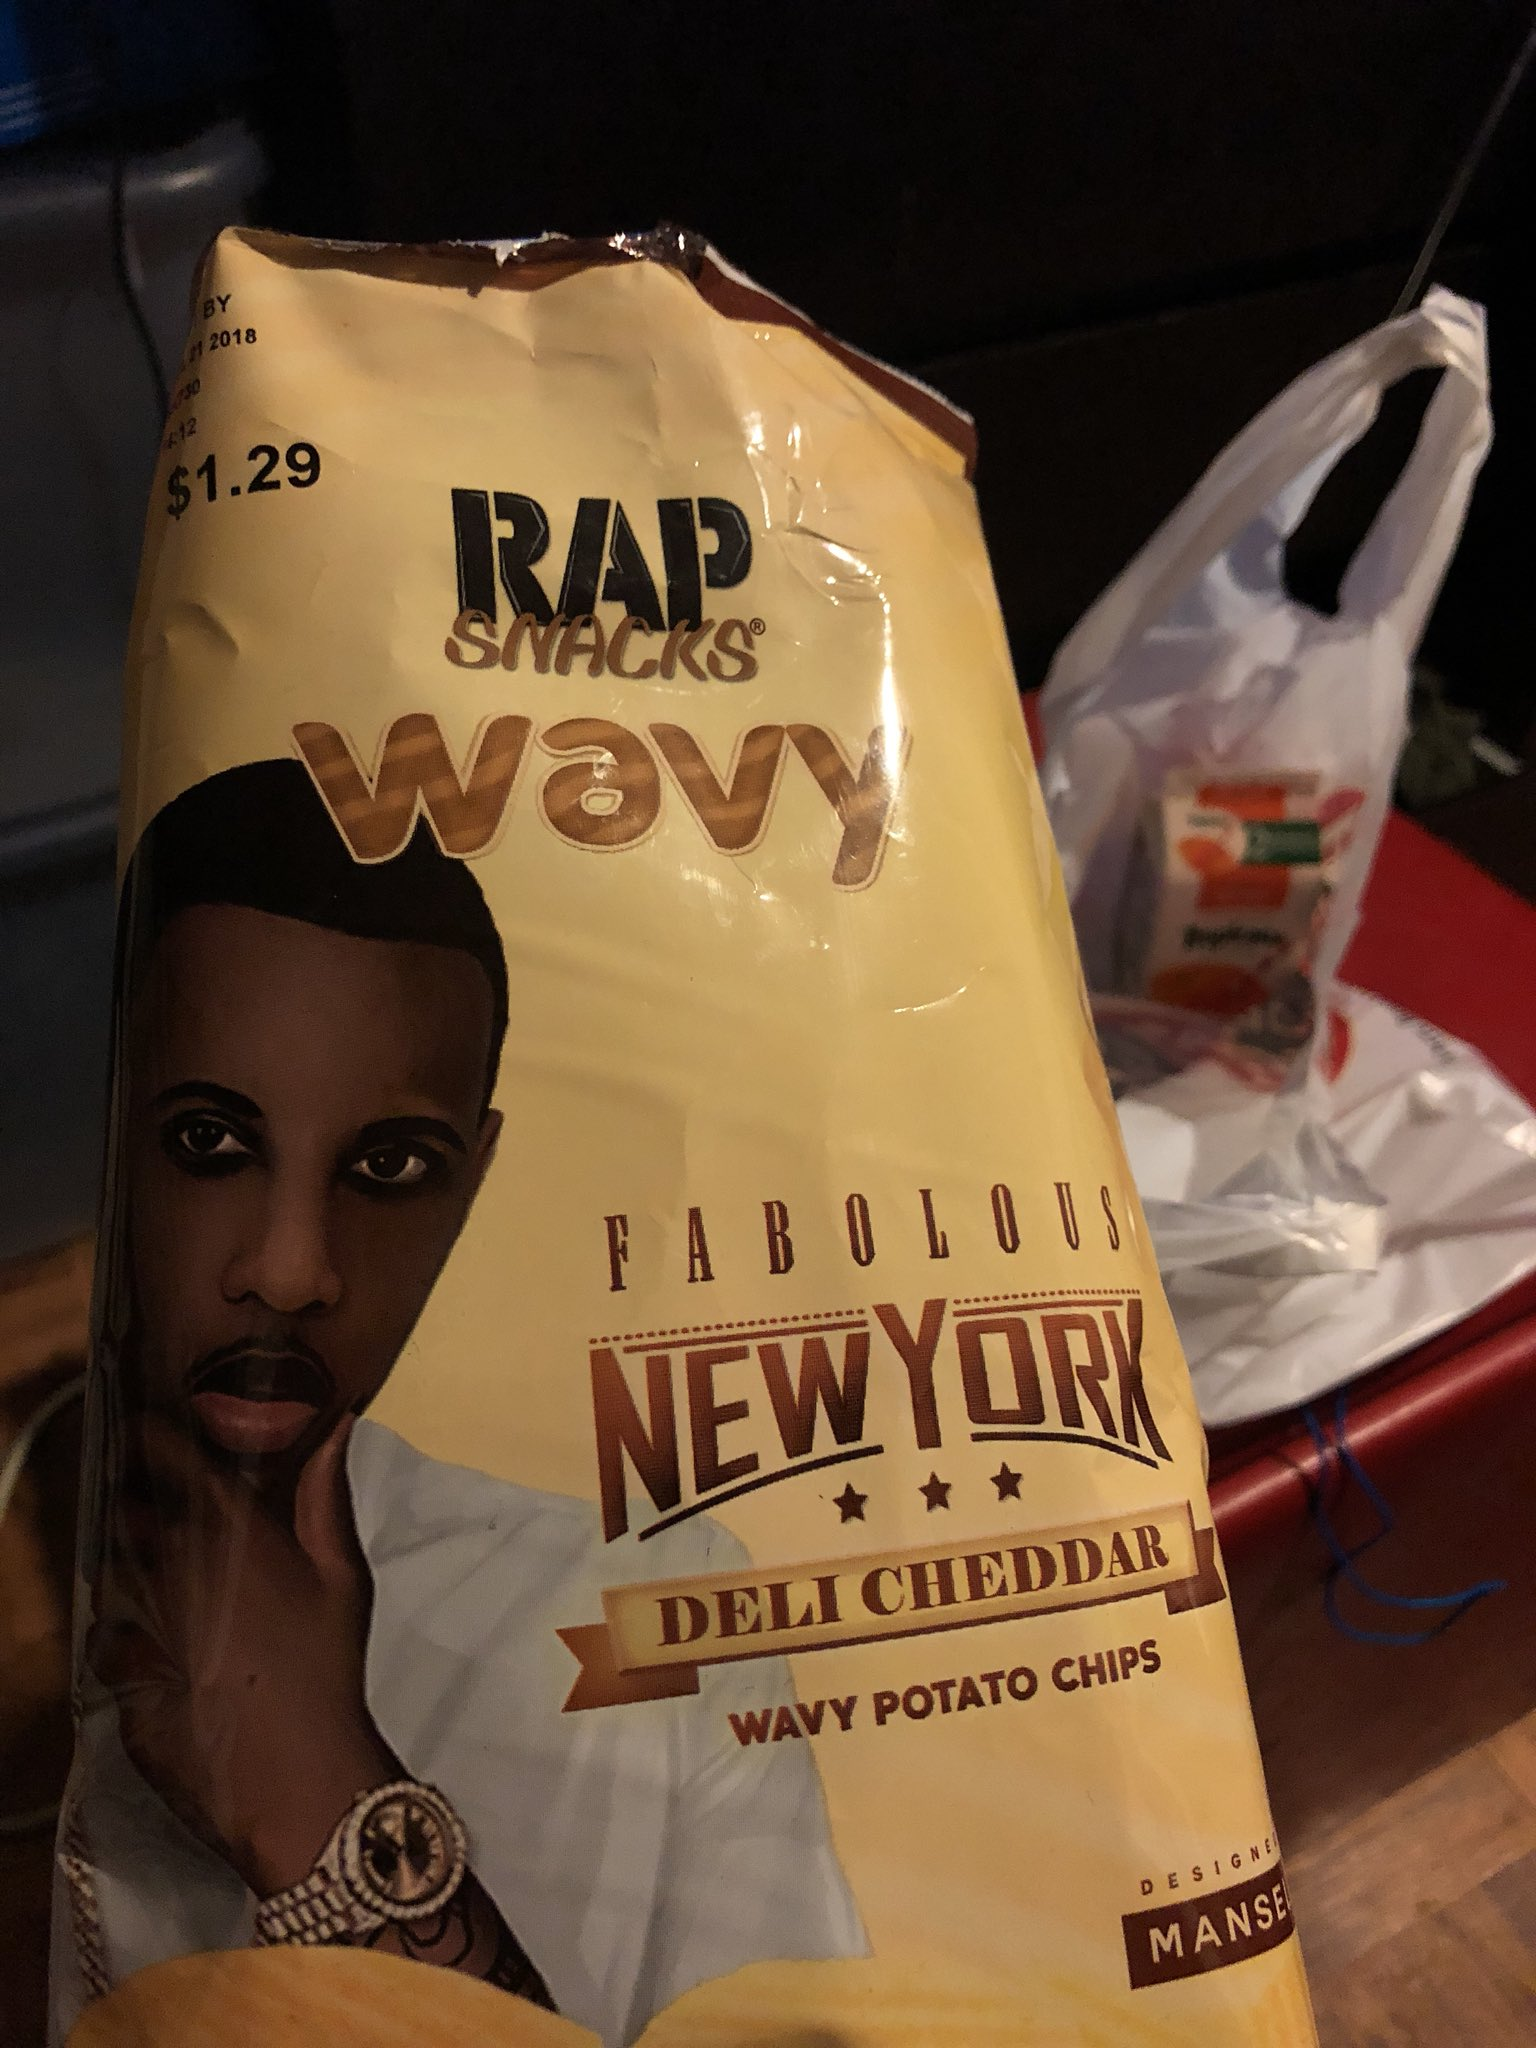 Told y'all 🔥 RT @JuneBMaccen: @myfabolouslife dawg this shit really the Wave. https://t.co/1nyTZY9WcR